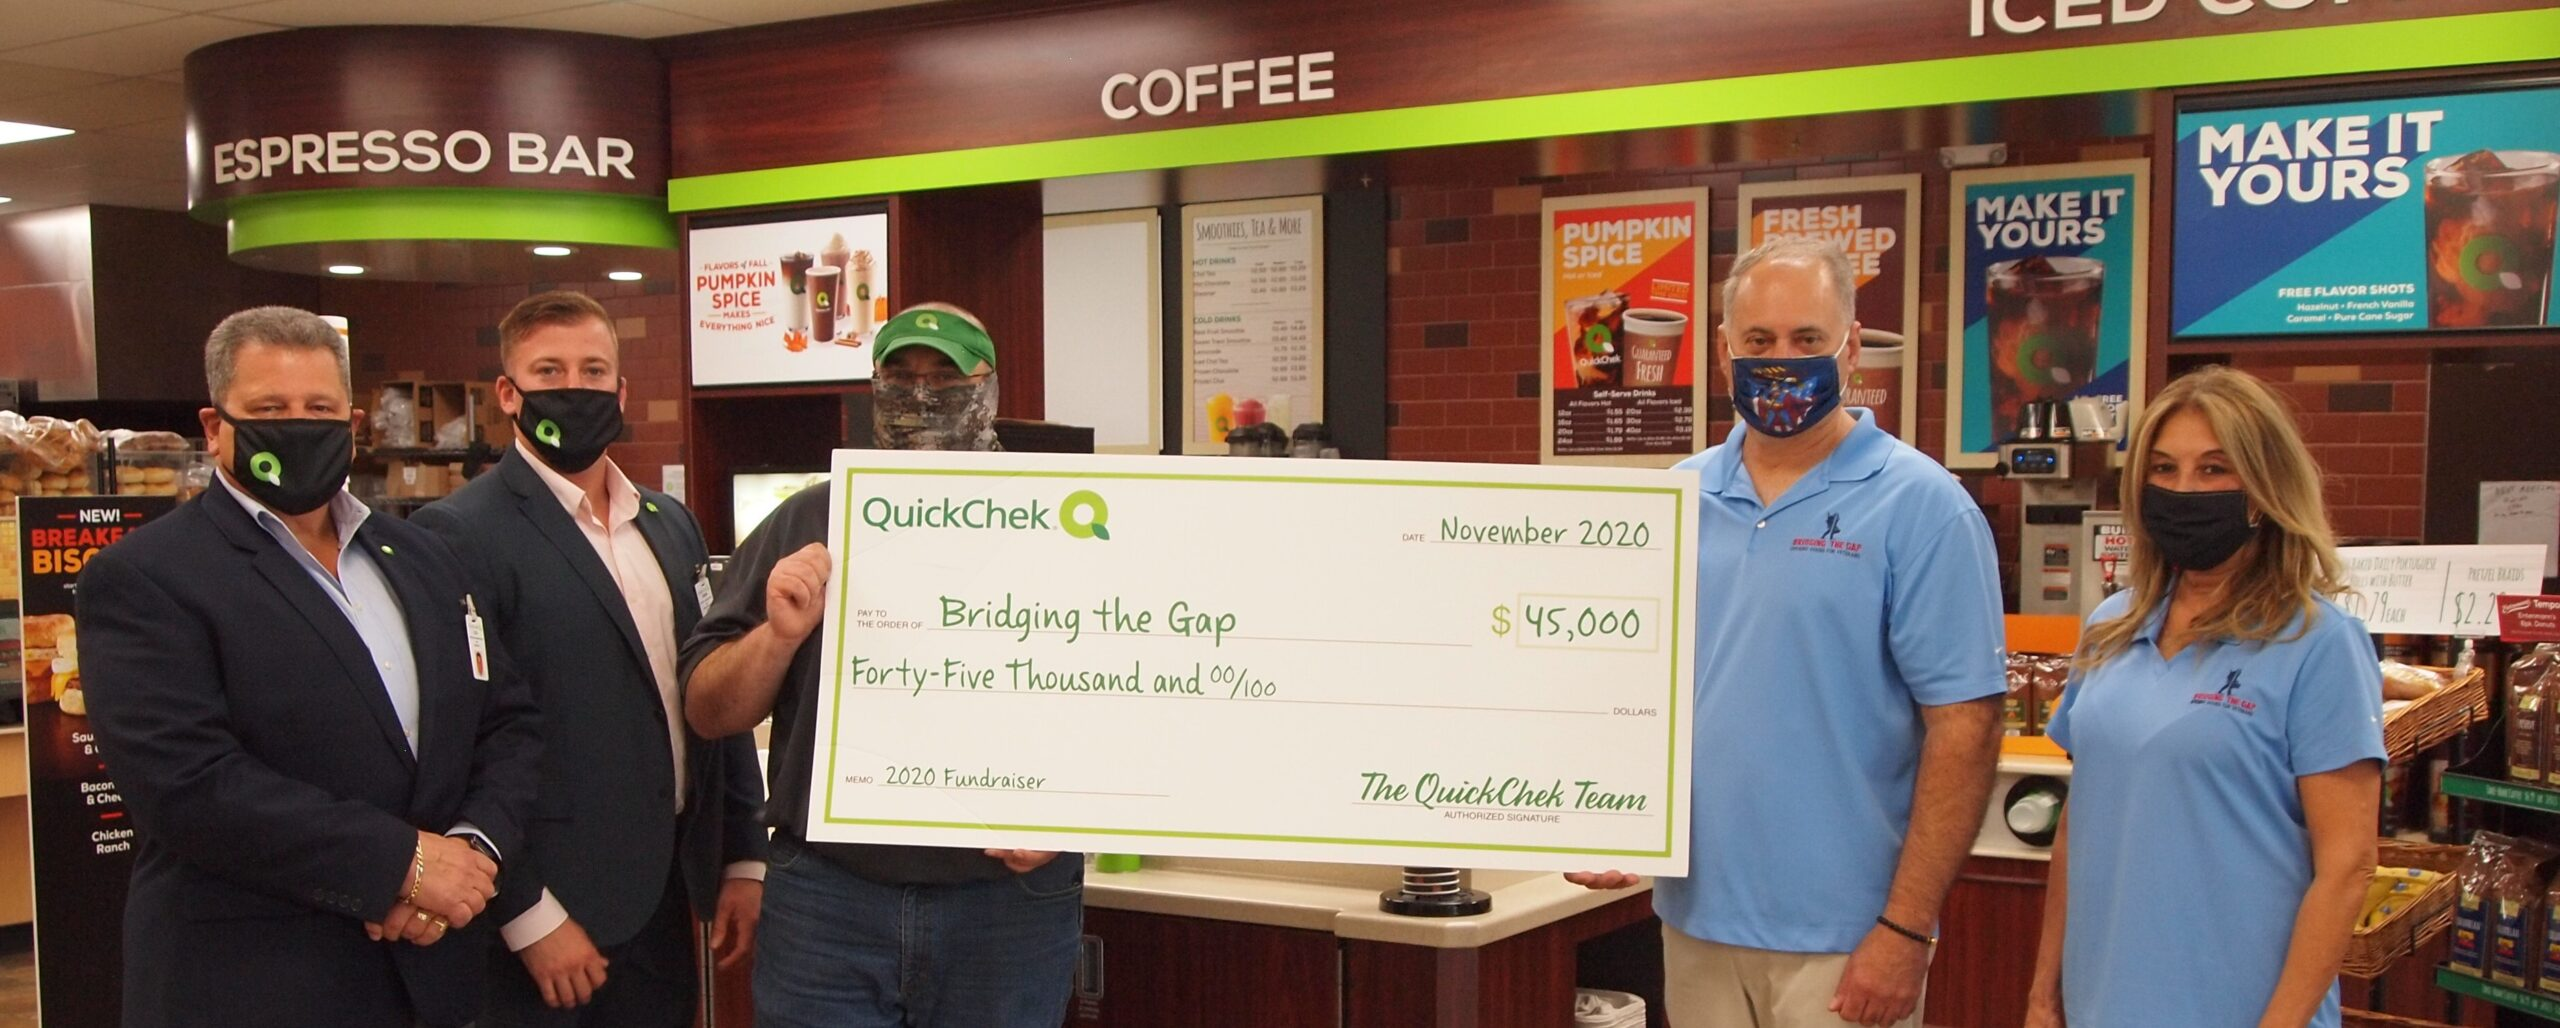 quickchek makes donation for vets